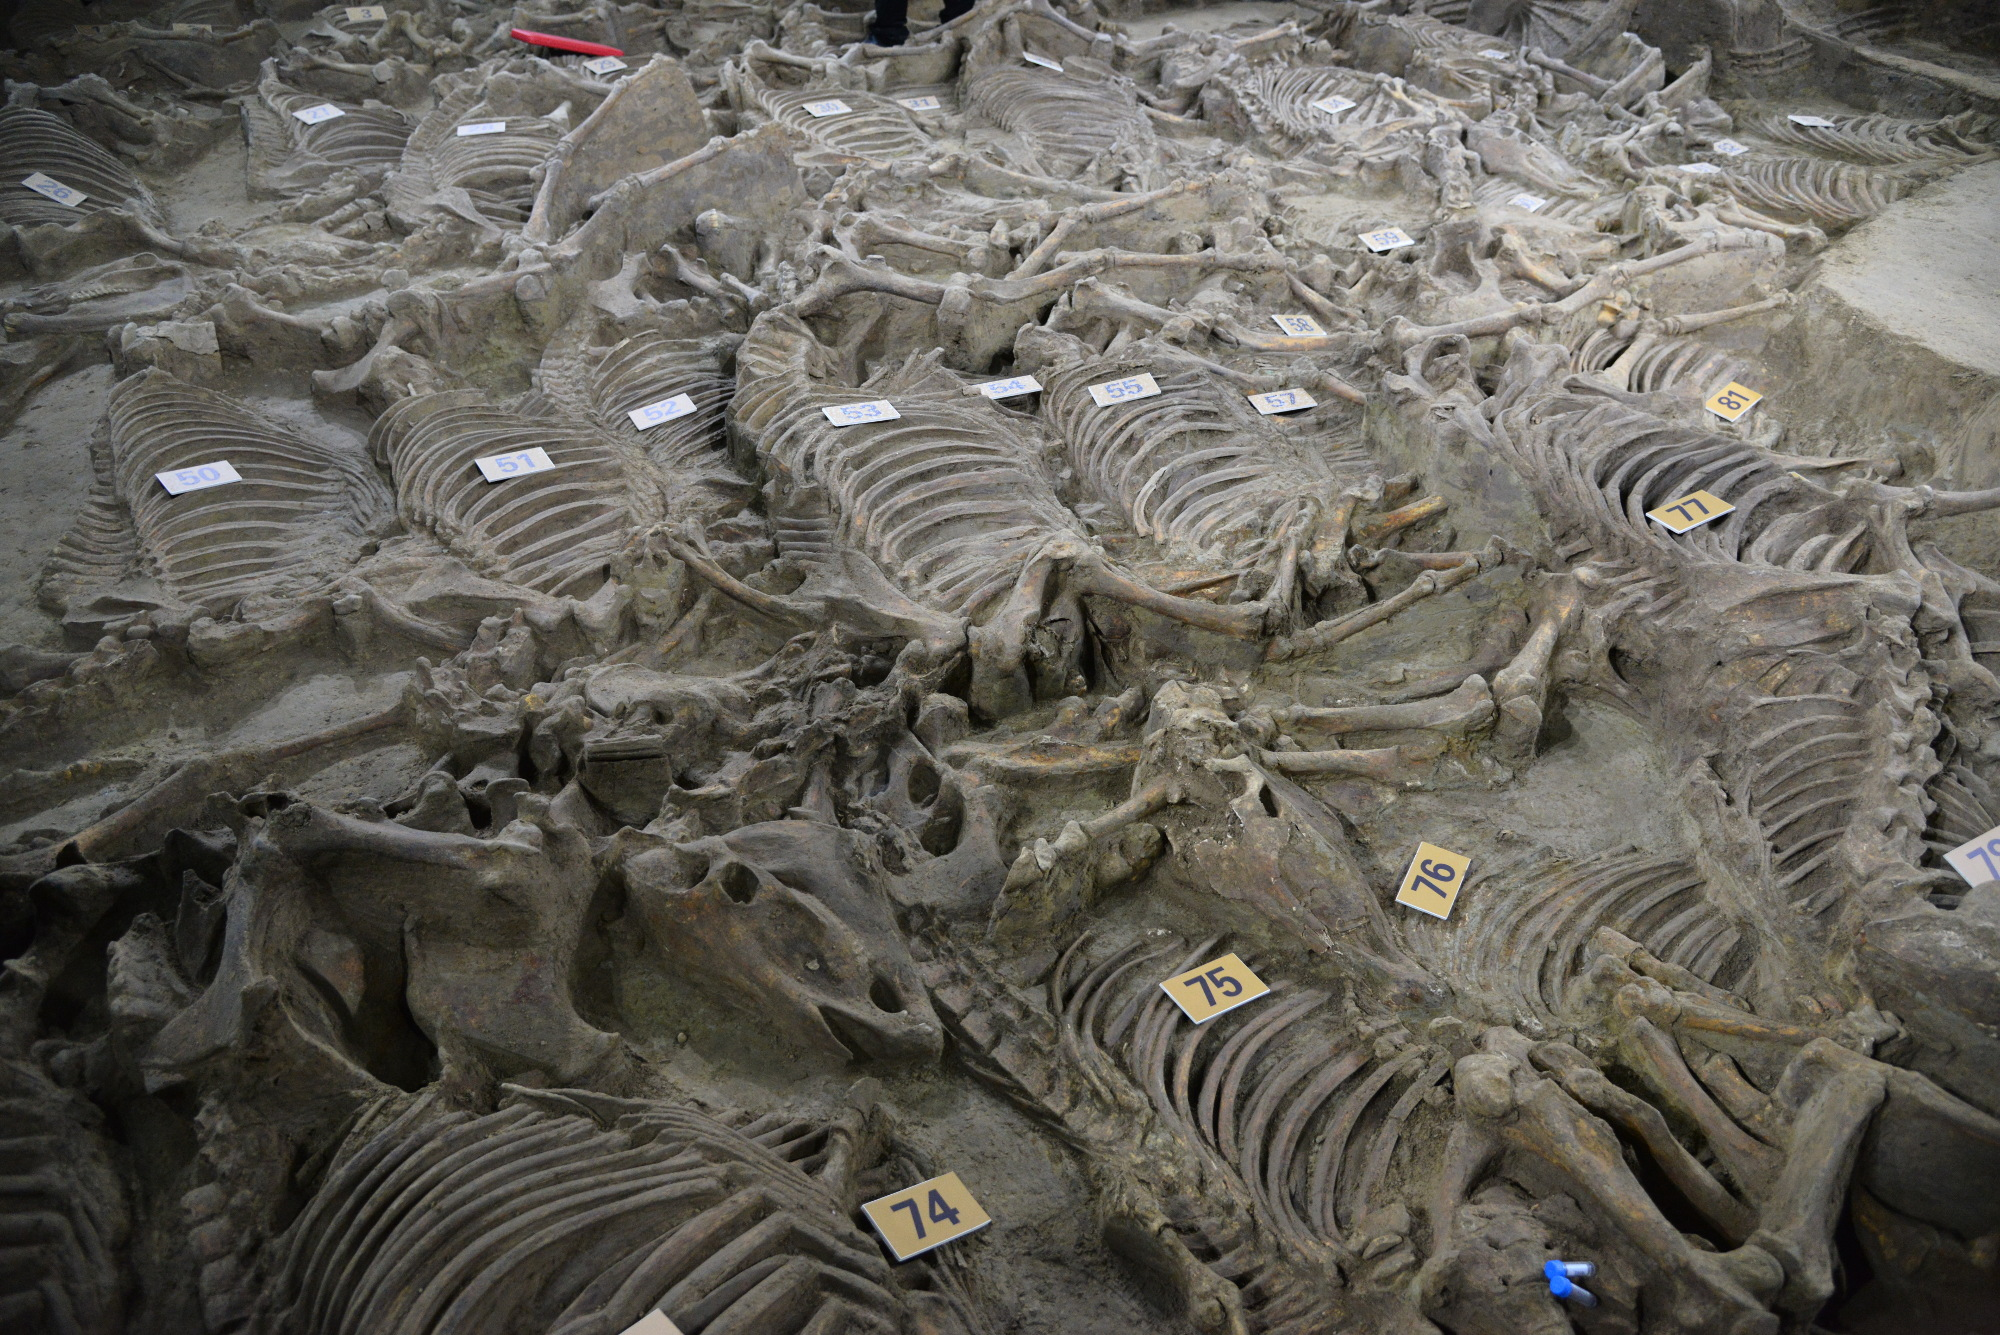 Skeletons of horses found by archaeologists